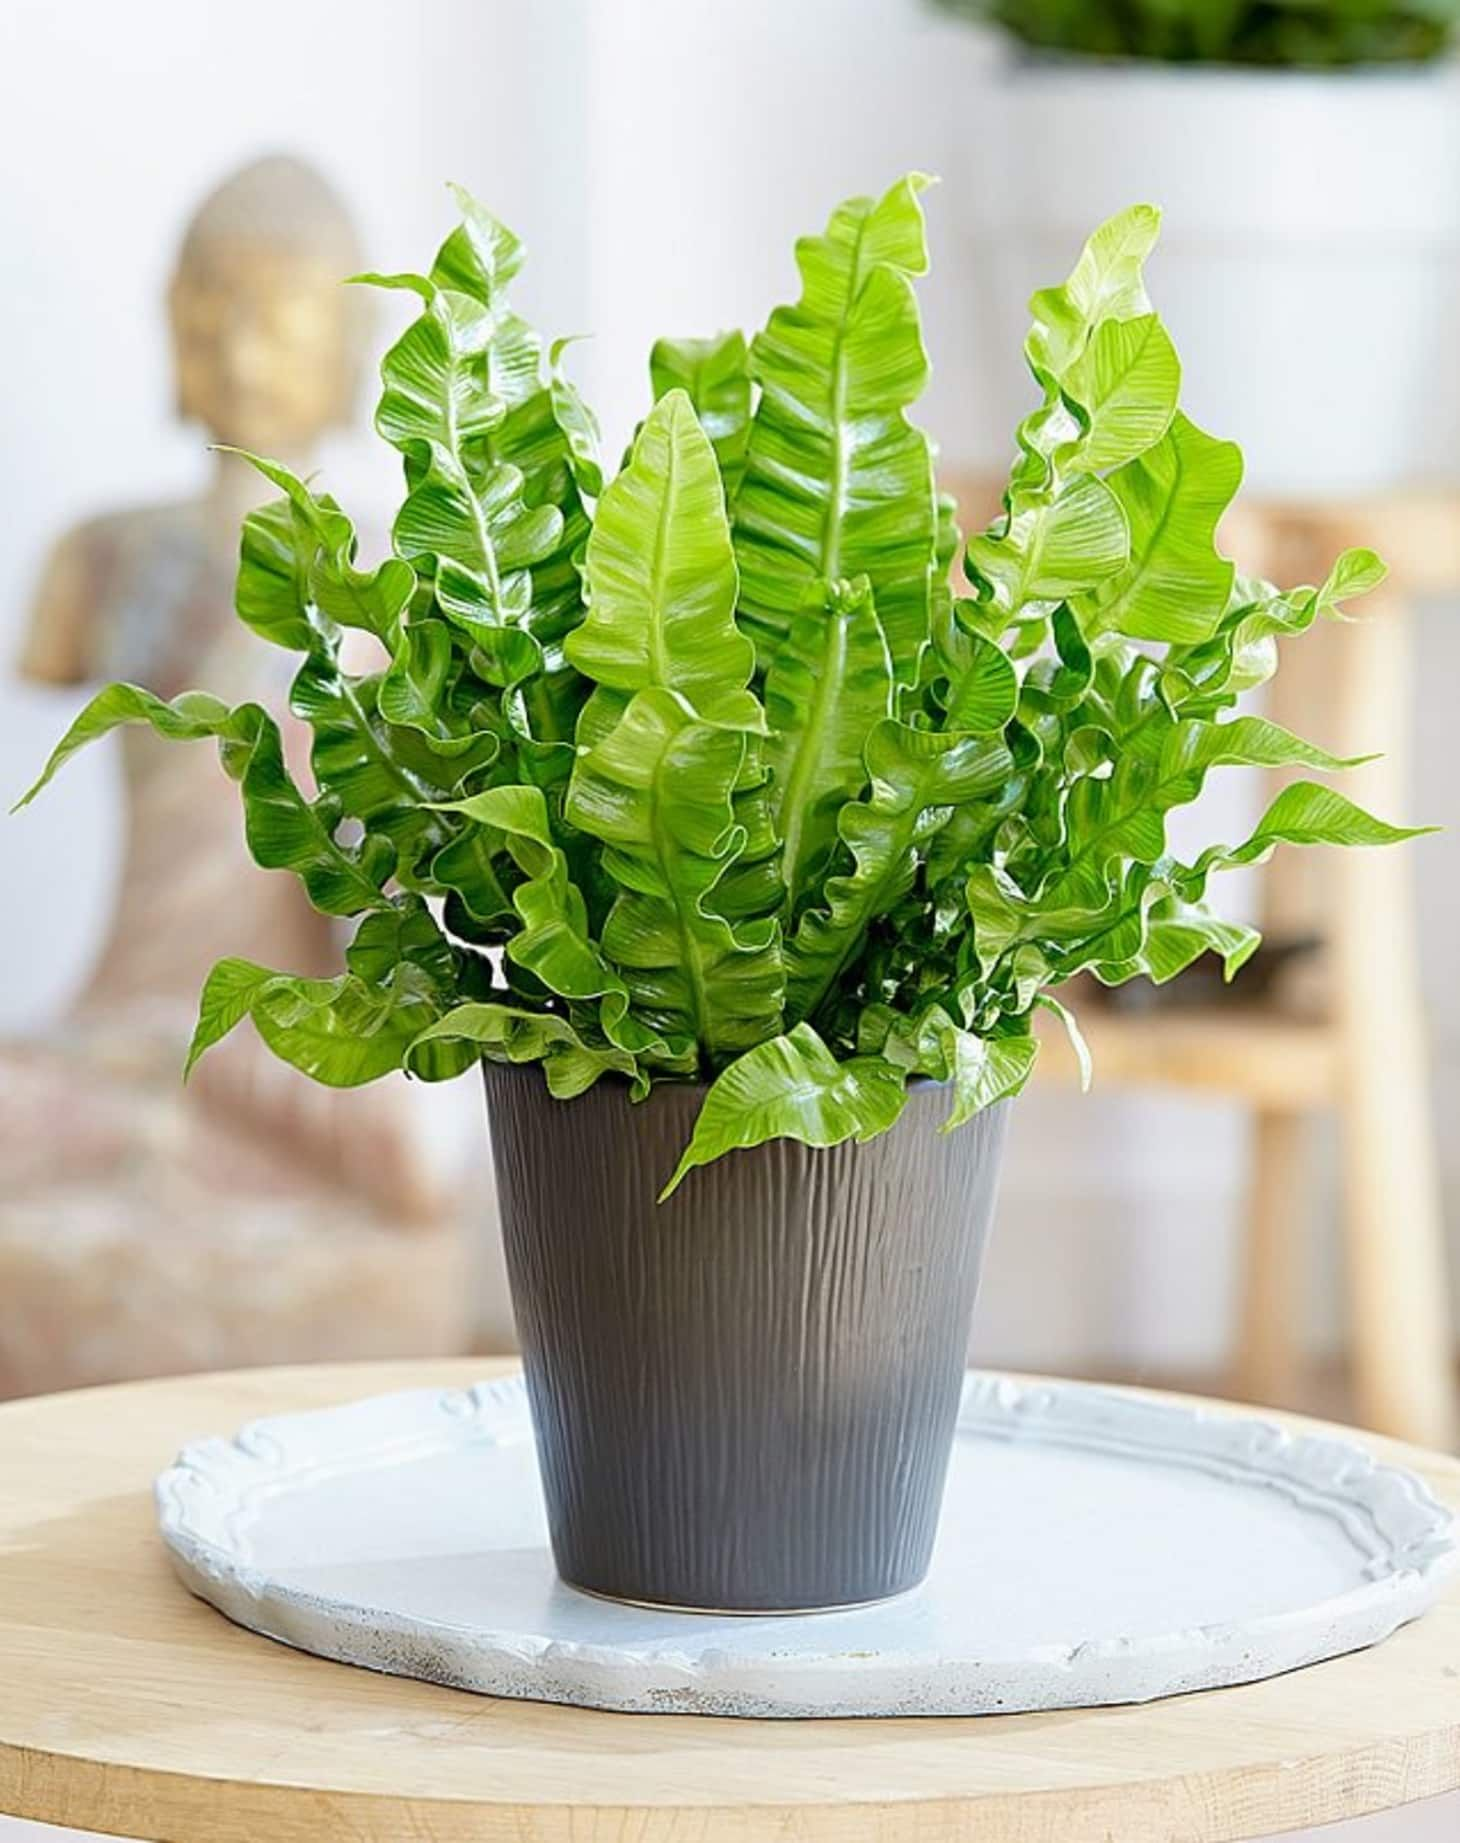 7 Houseplants With The Most Unique Leaves We Ve Ever Seen Apartment Therapy Plants House Plants Indoor Foliage Plants